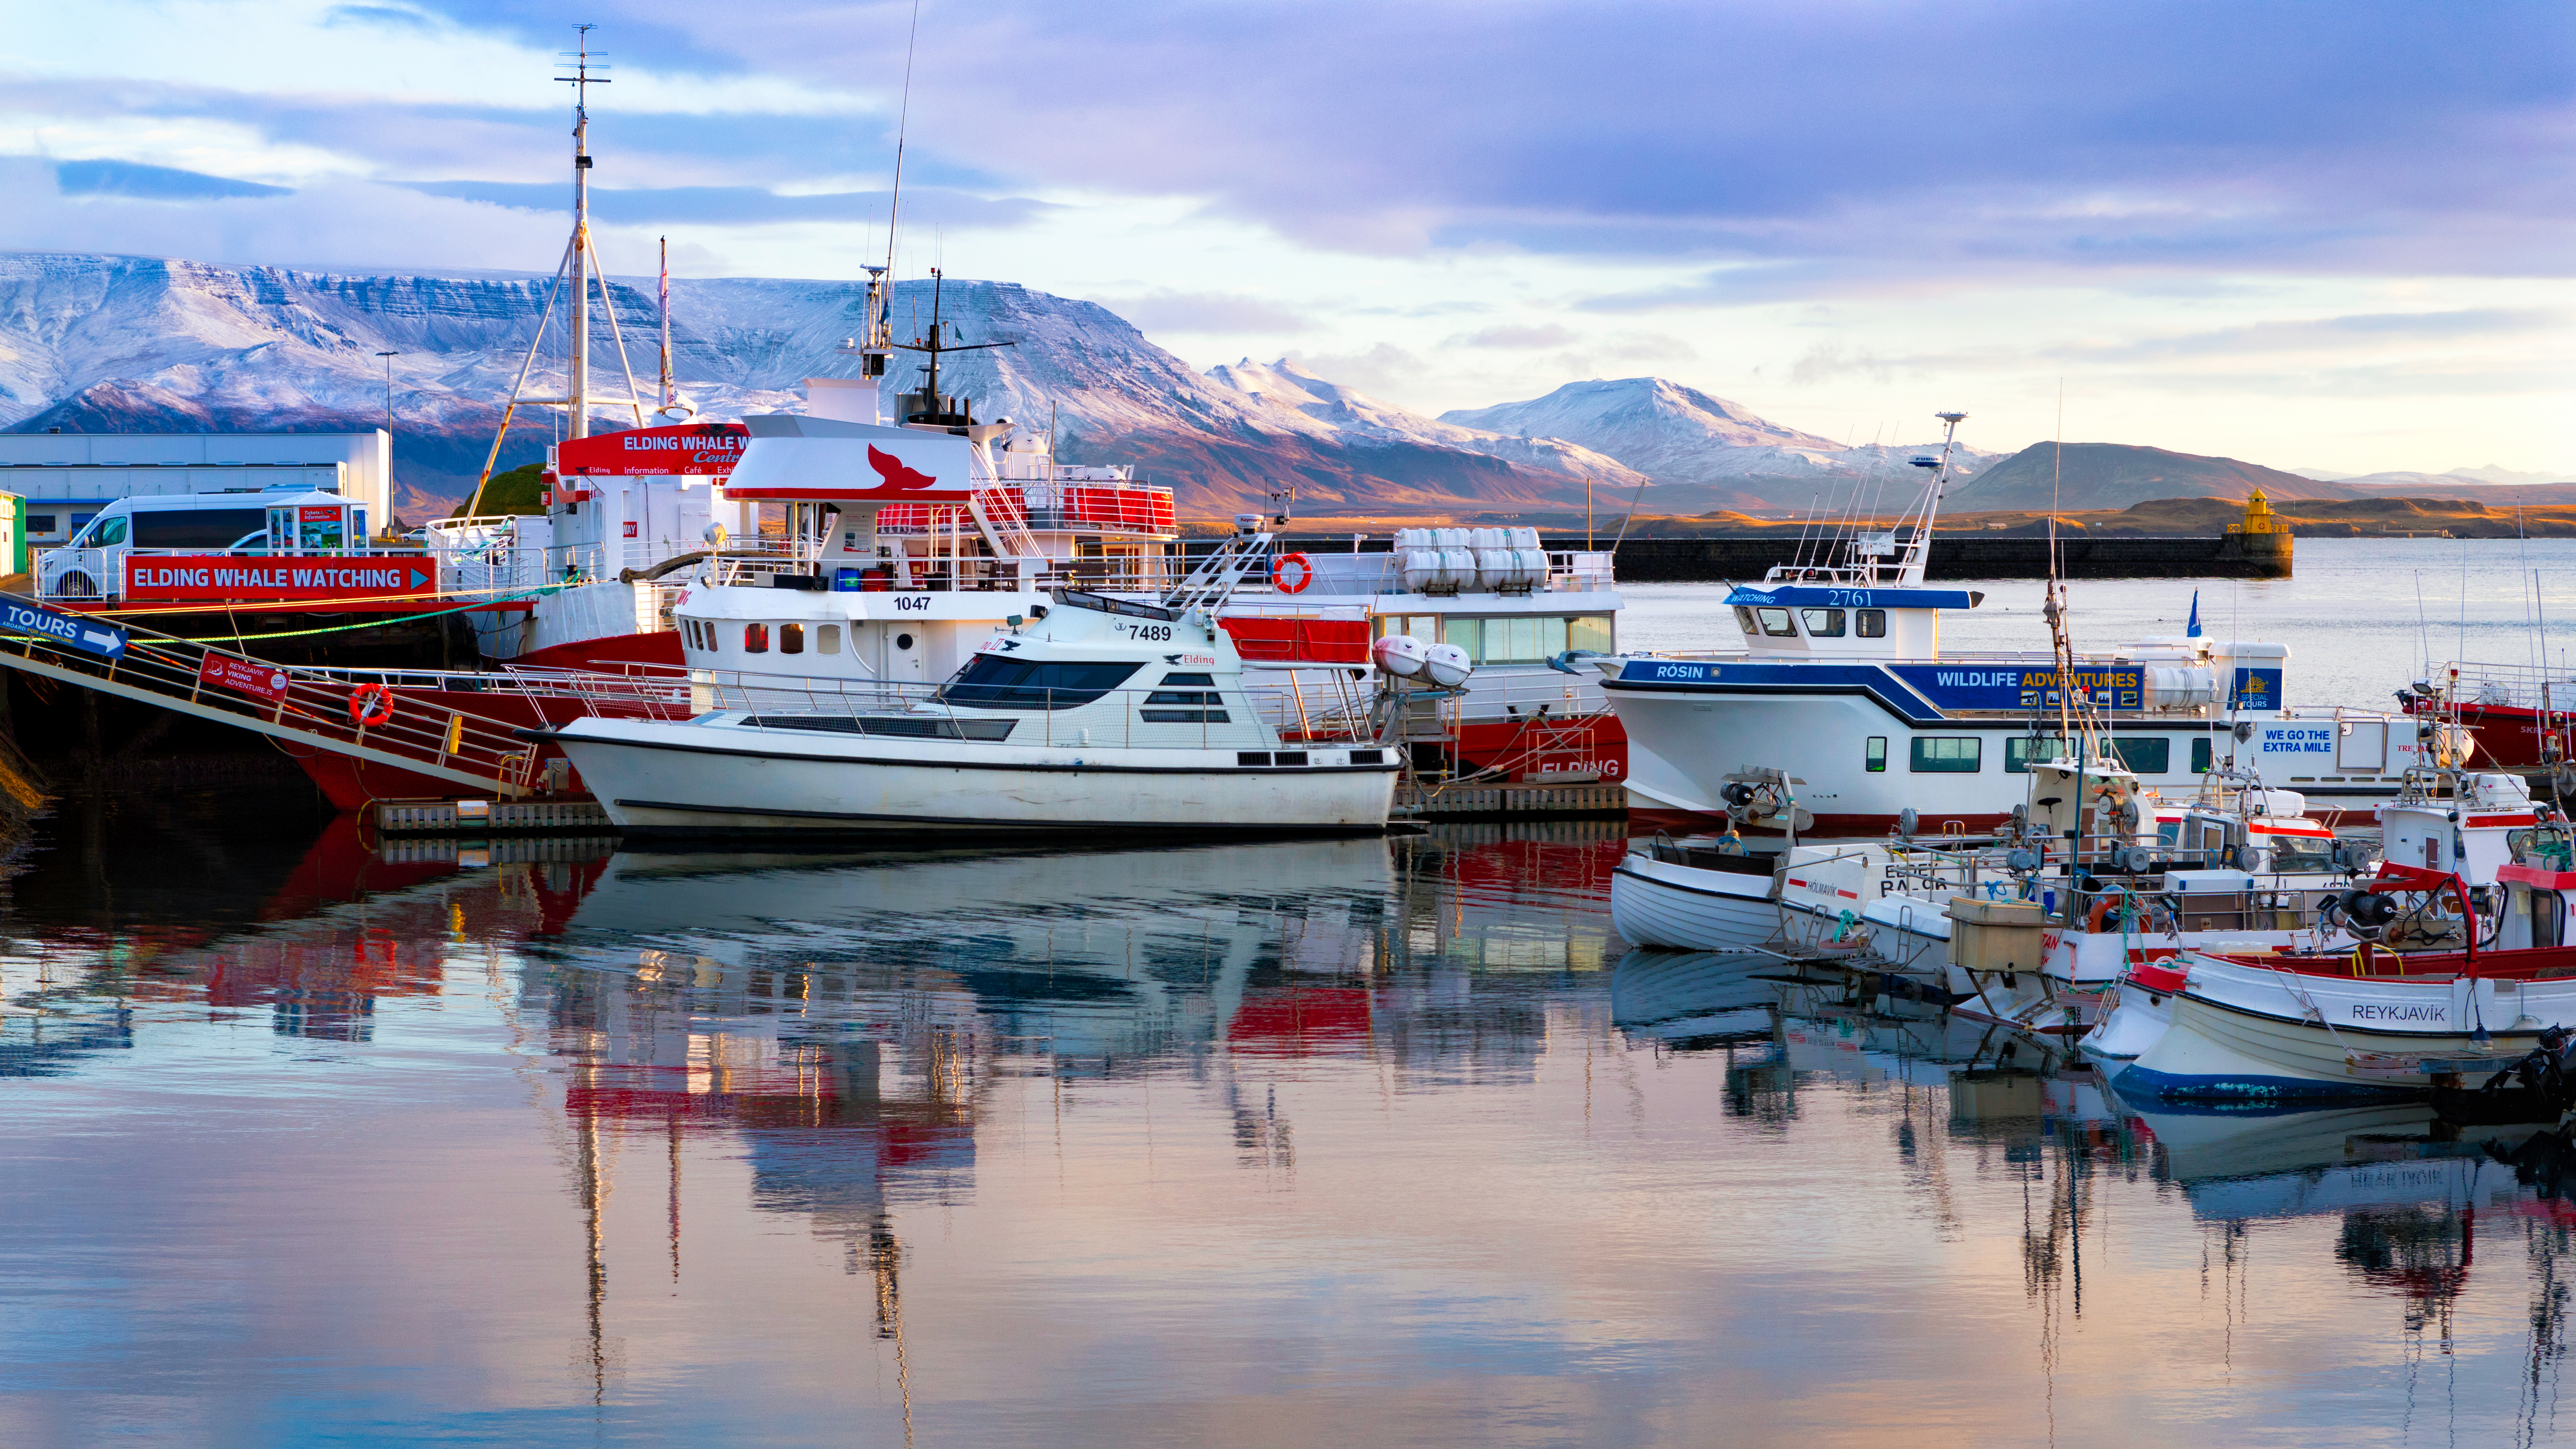 The Old Harbor of Reykjavik was built in 1917. Today it is a hub of fishing boats, whale watching tours and shops.